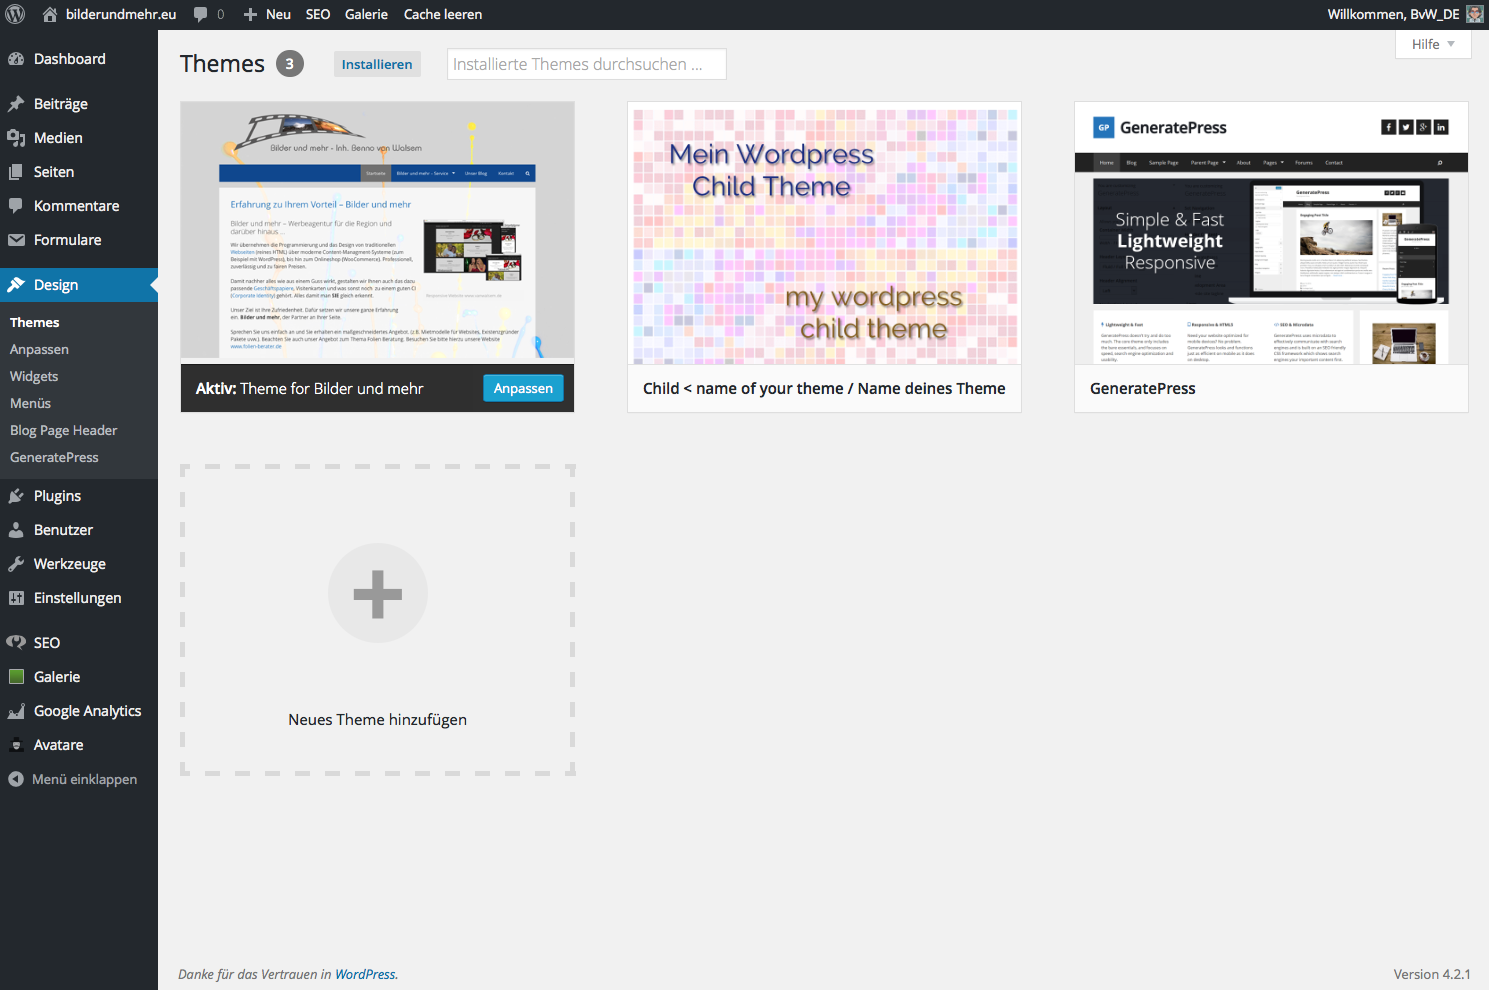 Wordpress - Child Theme anlegen